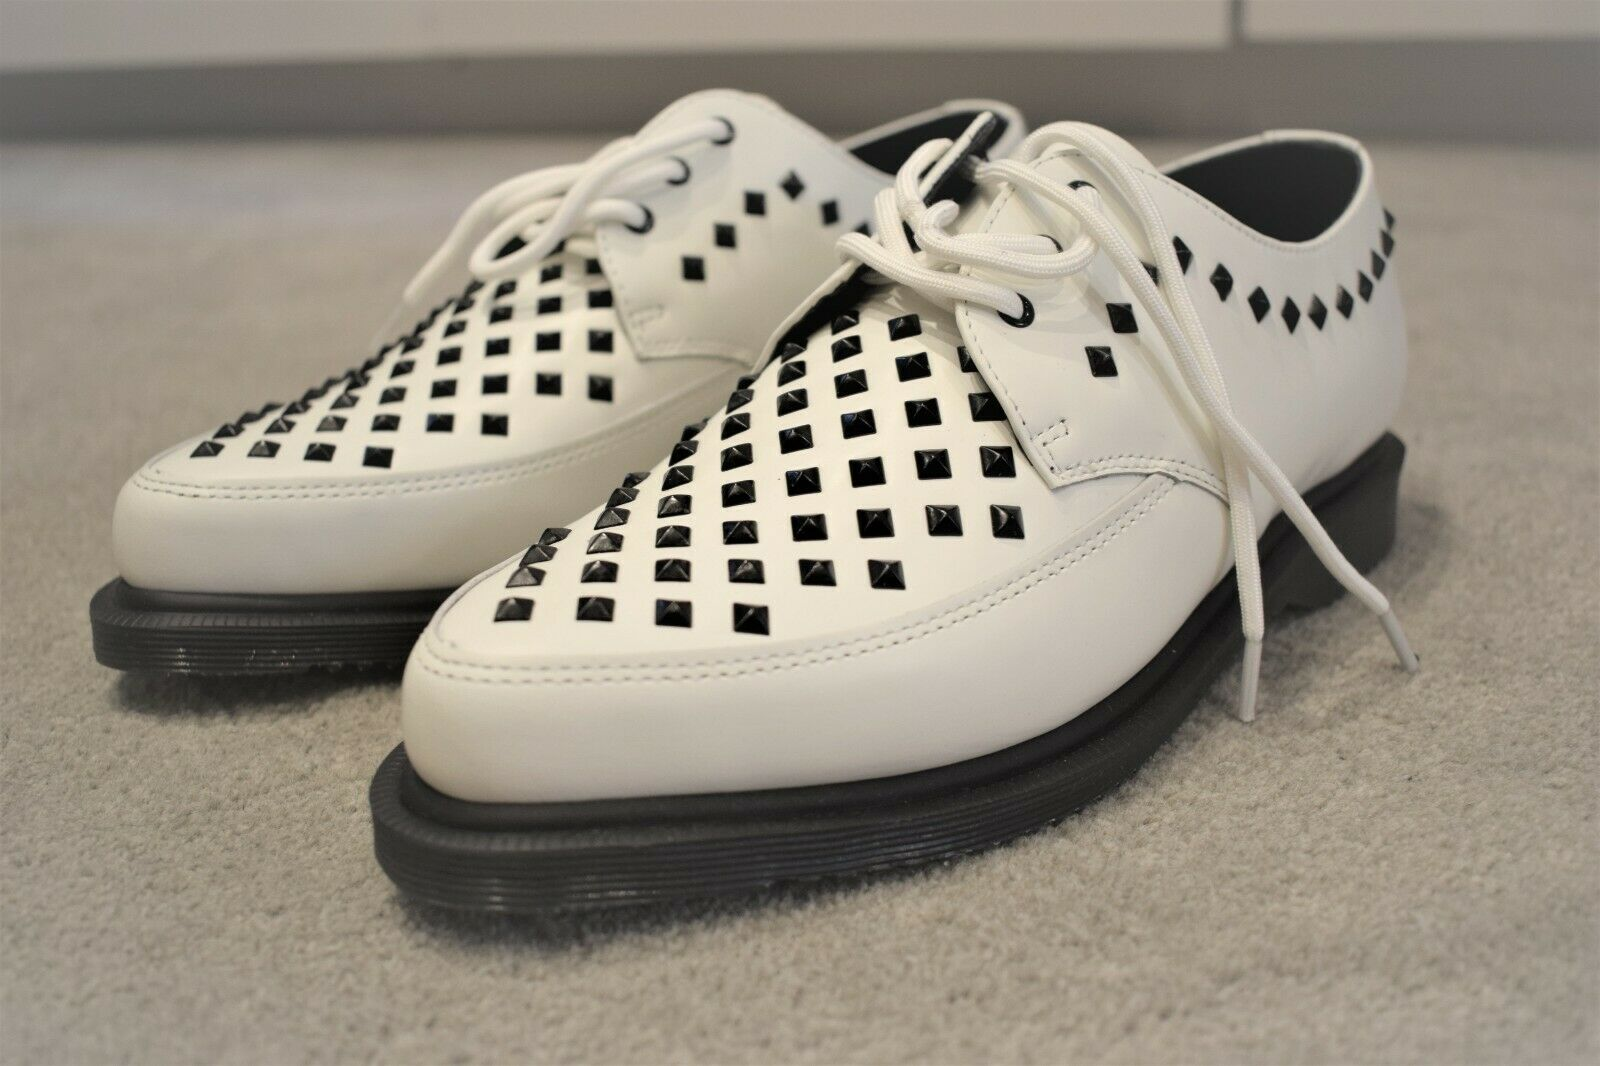 Dr. Martens UNISEX Willis shoes UK 11 White Rousden Creepers Lace Up Leather